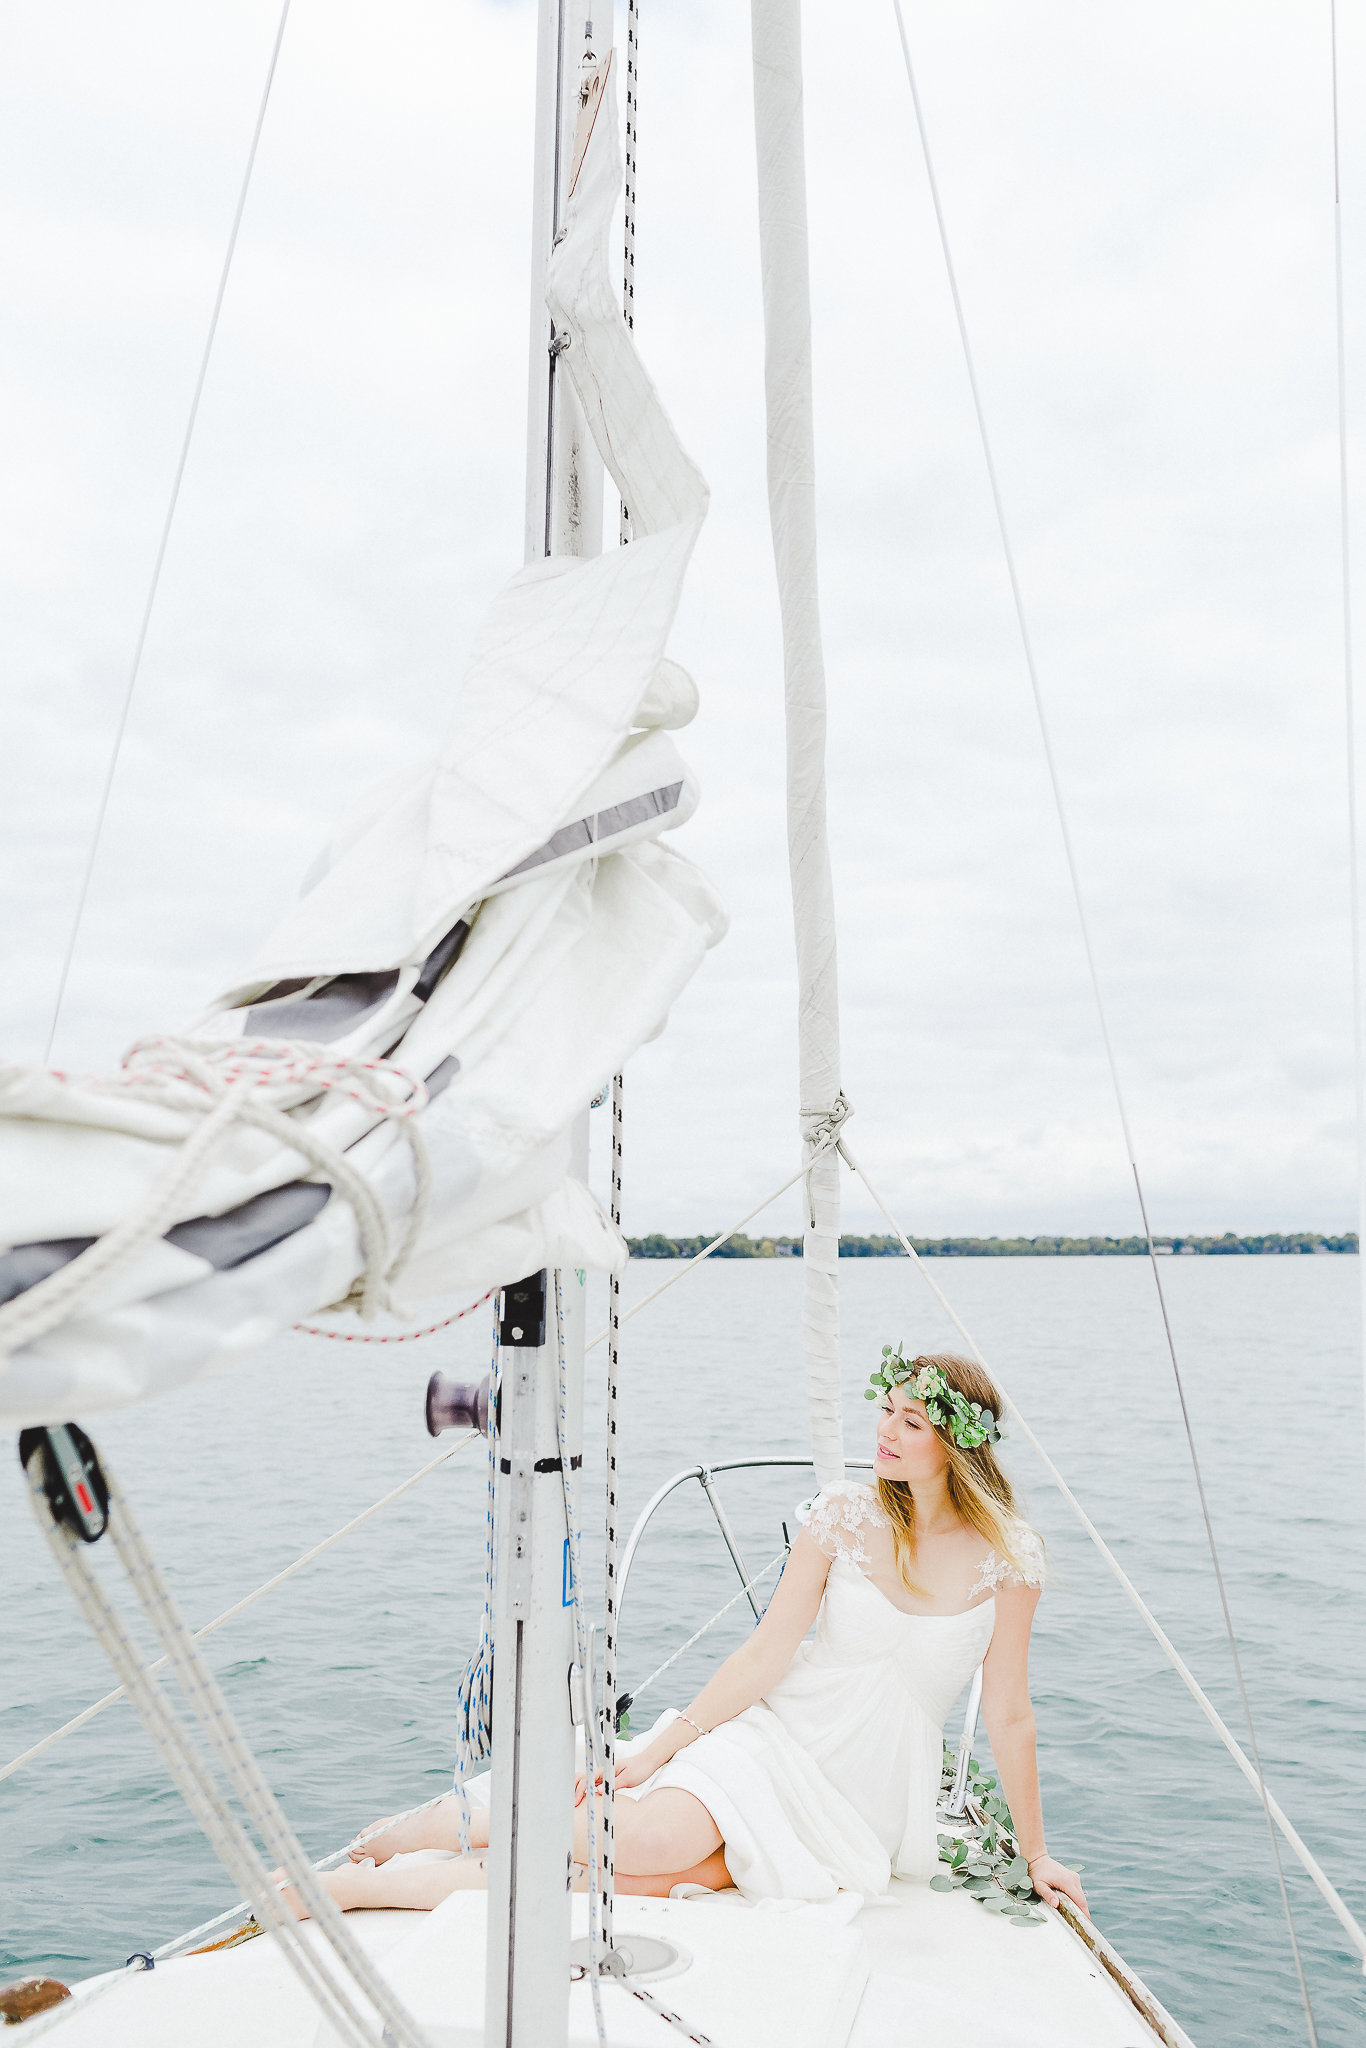 photographe-mariage-montreal-west-island-lisa-renault-photographie-montreal-wedding-photographer-69